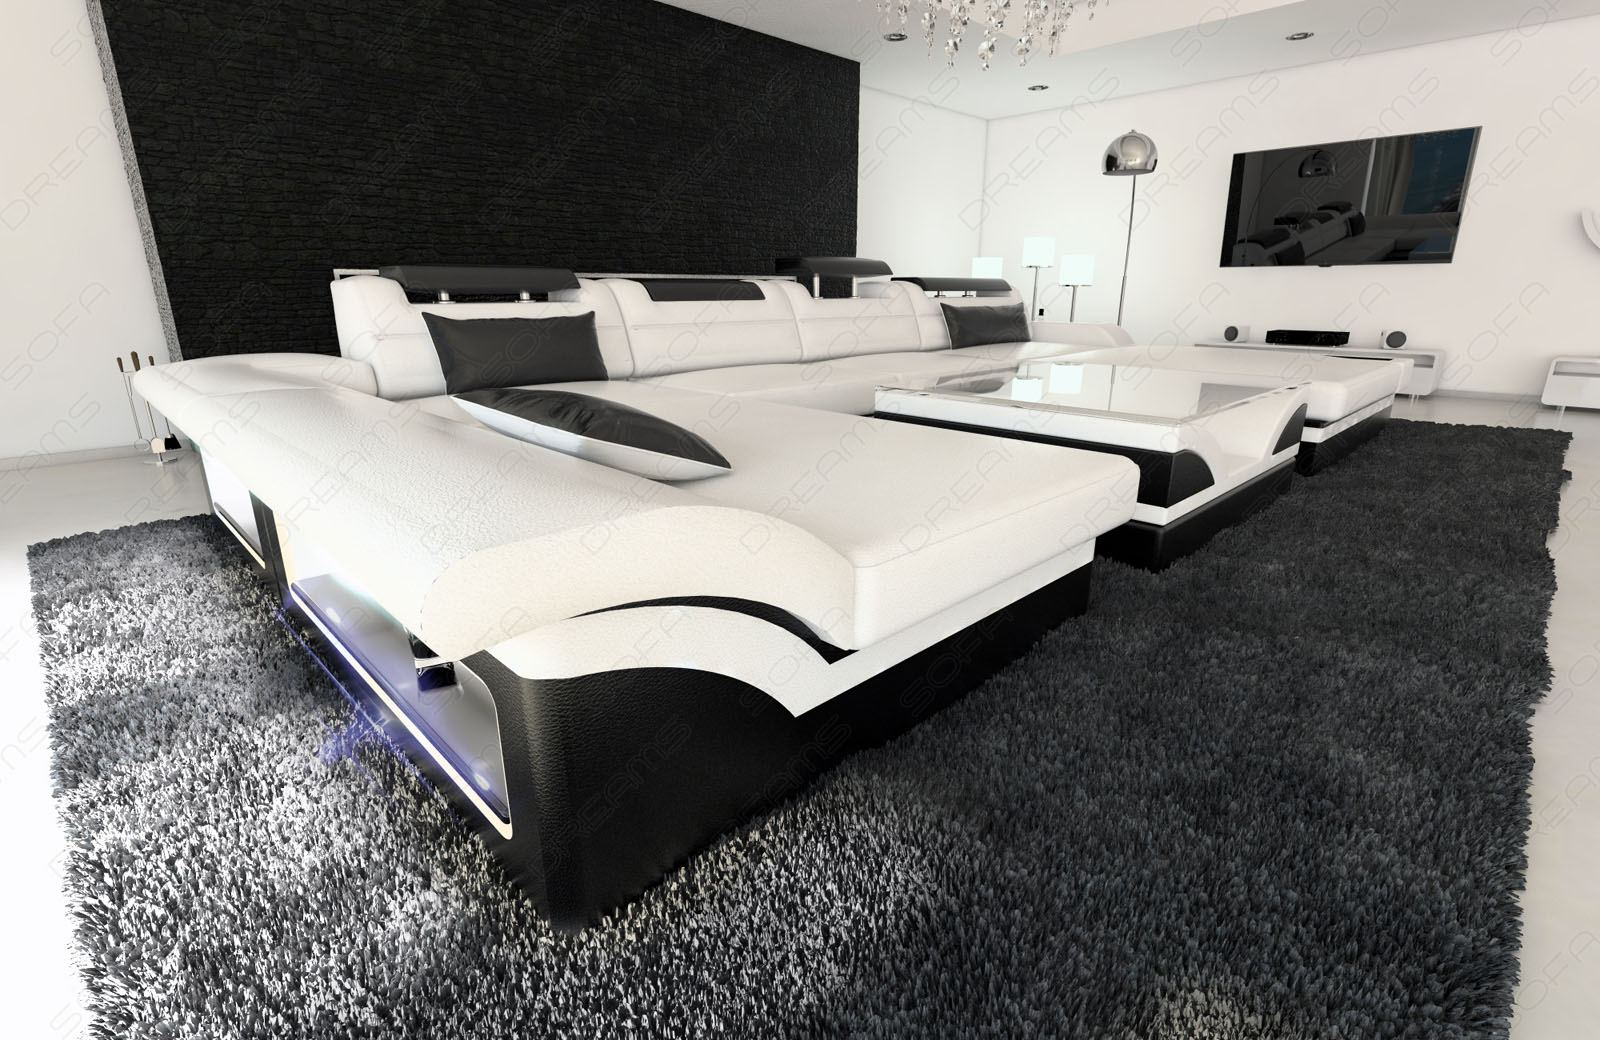 details about big sectional sofa monza u shaped with led lights white. Black Bedroom Furniture Sets. Home Design Ideas